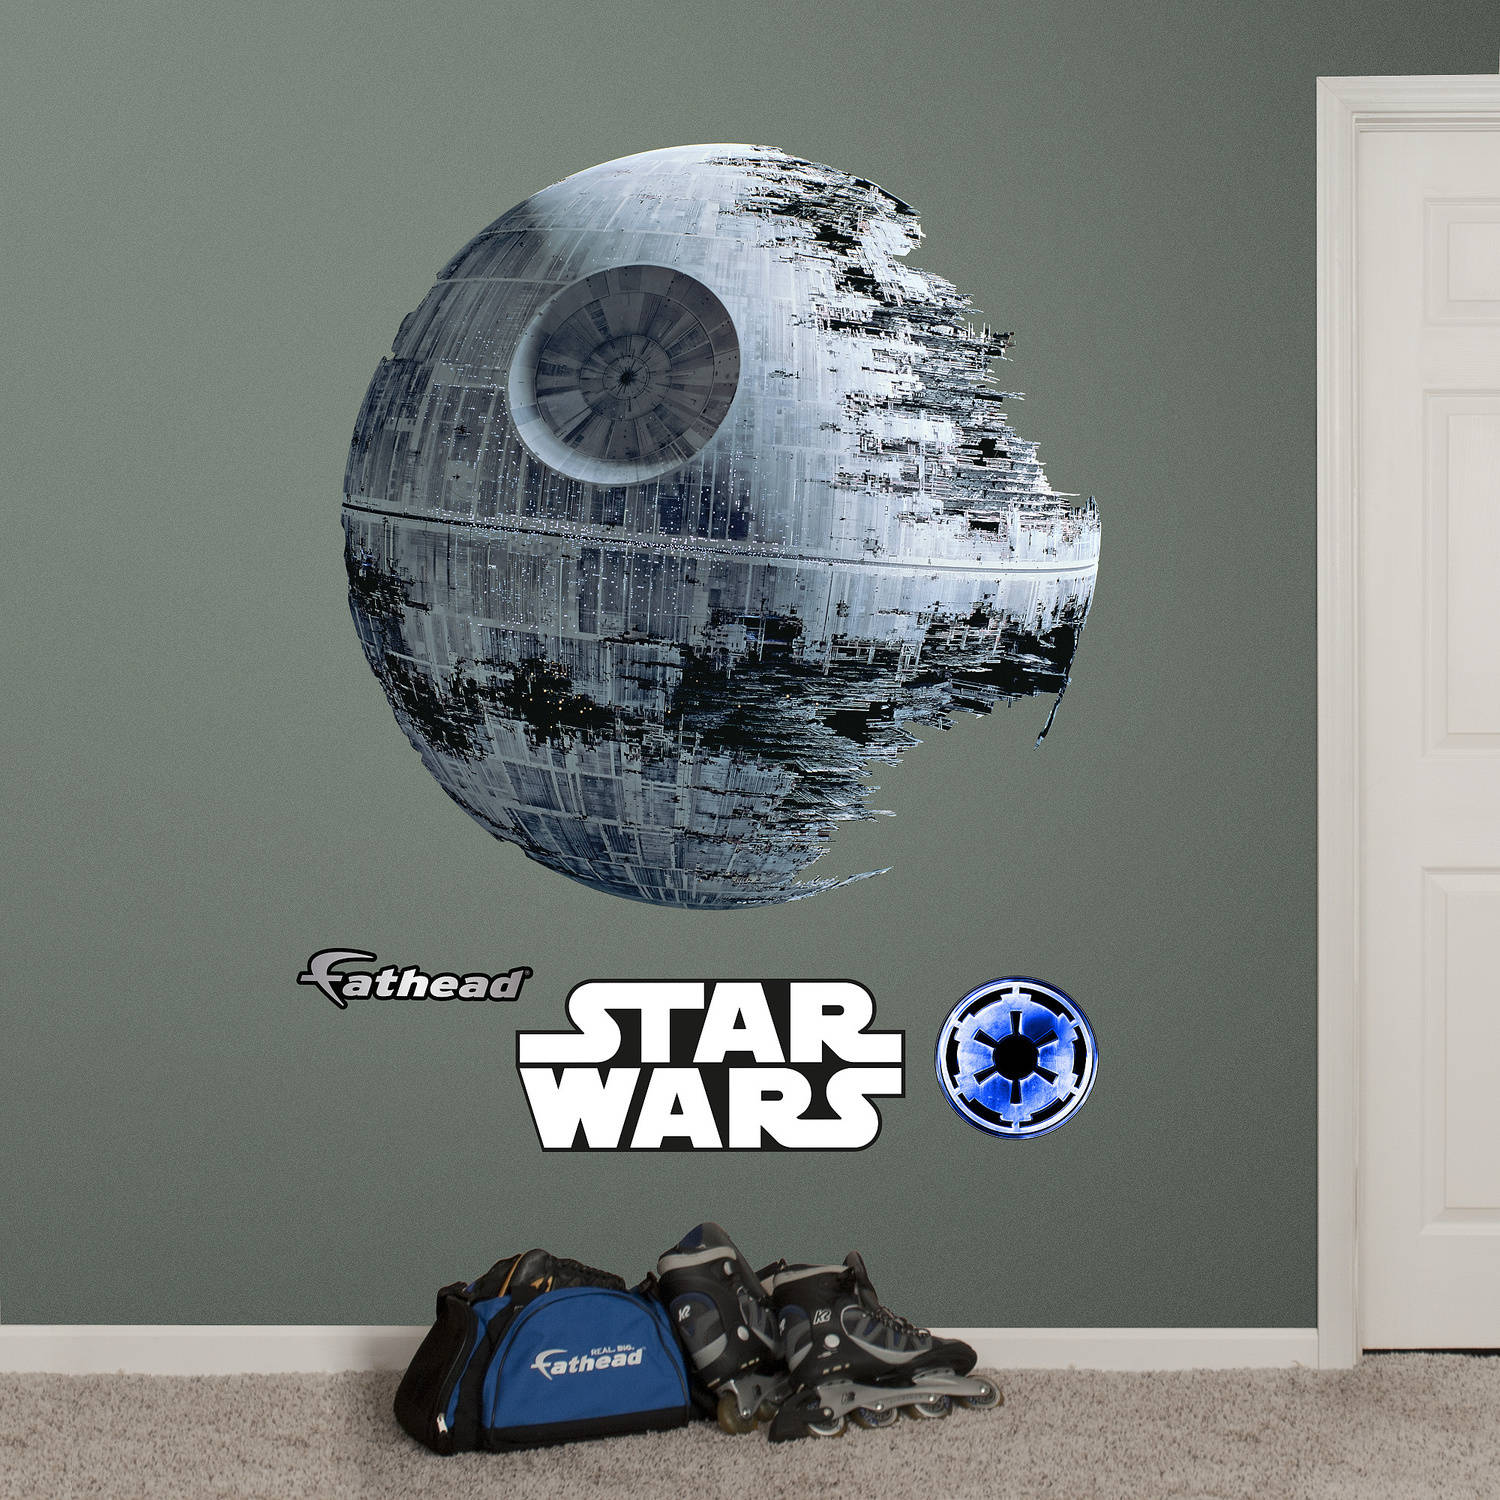 Fathead Death Star Wall Decals